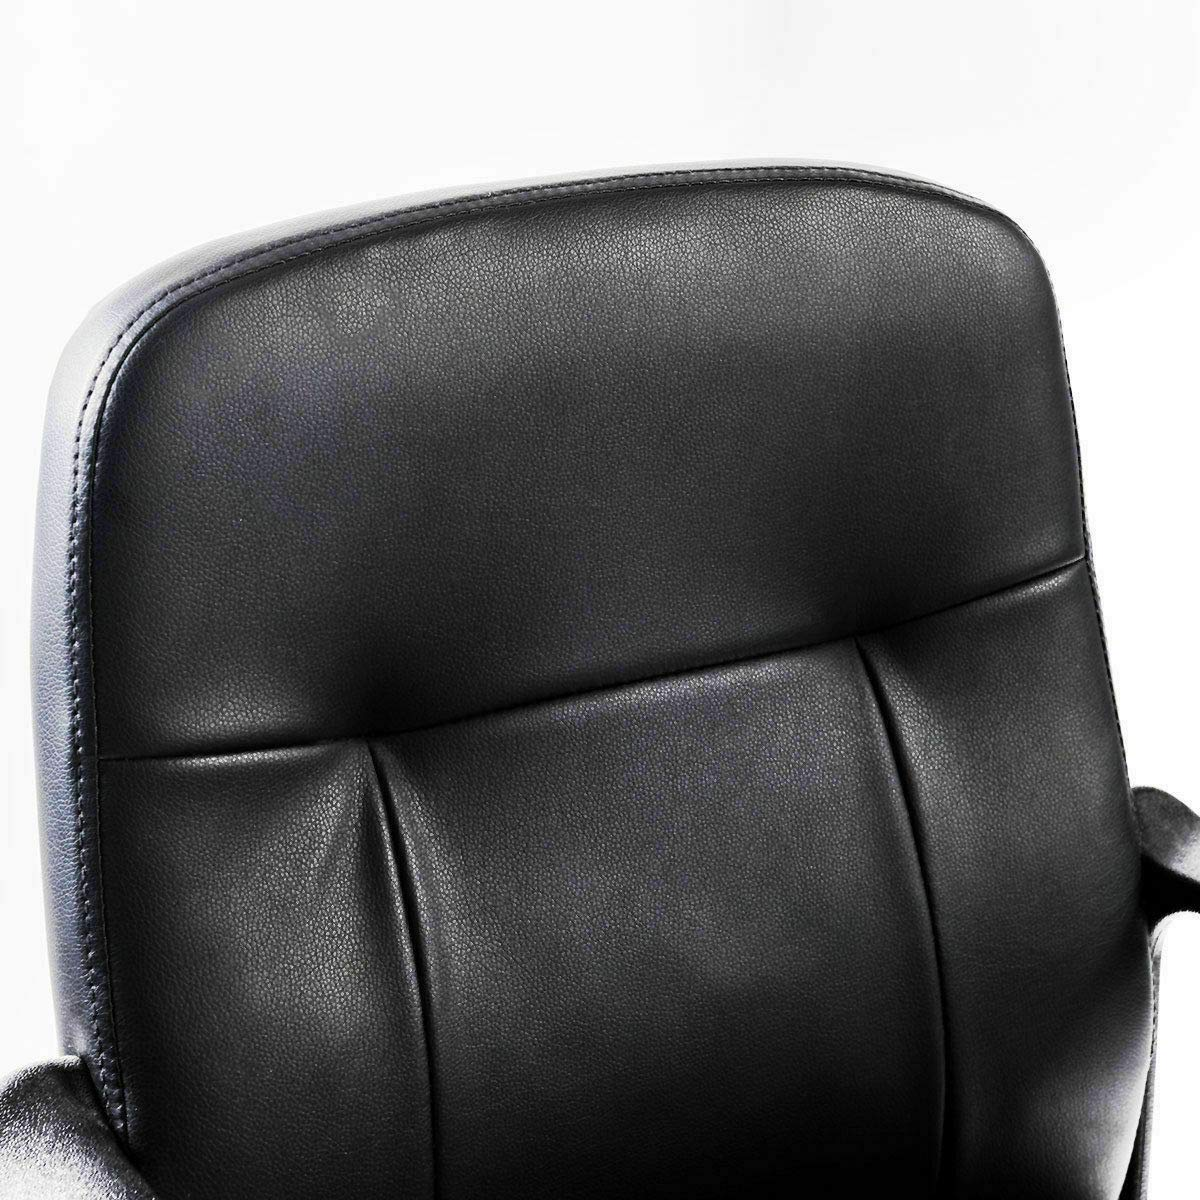 Seleq Compact Black PU Leather Desk Chair for Home Office by Seleq (Image #6)